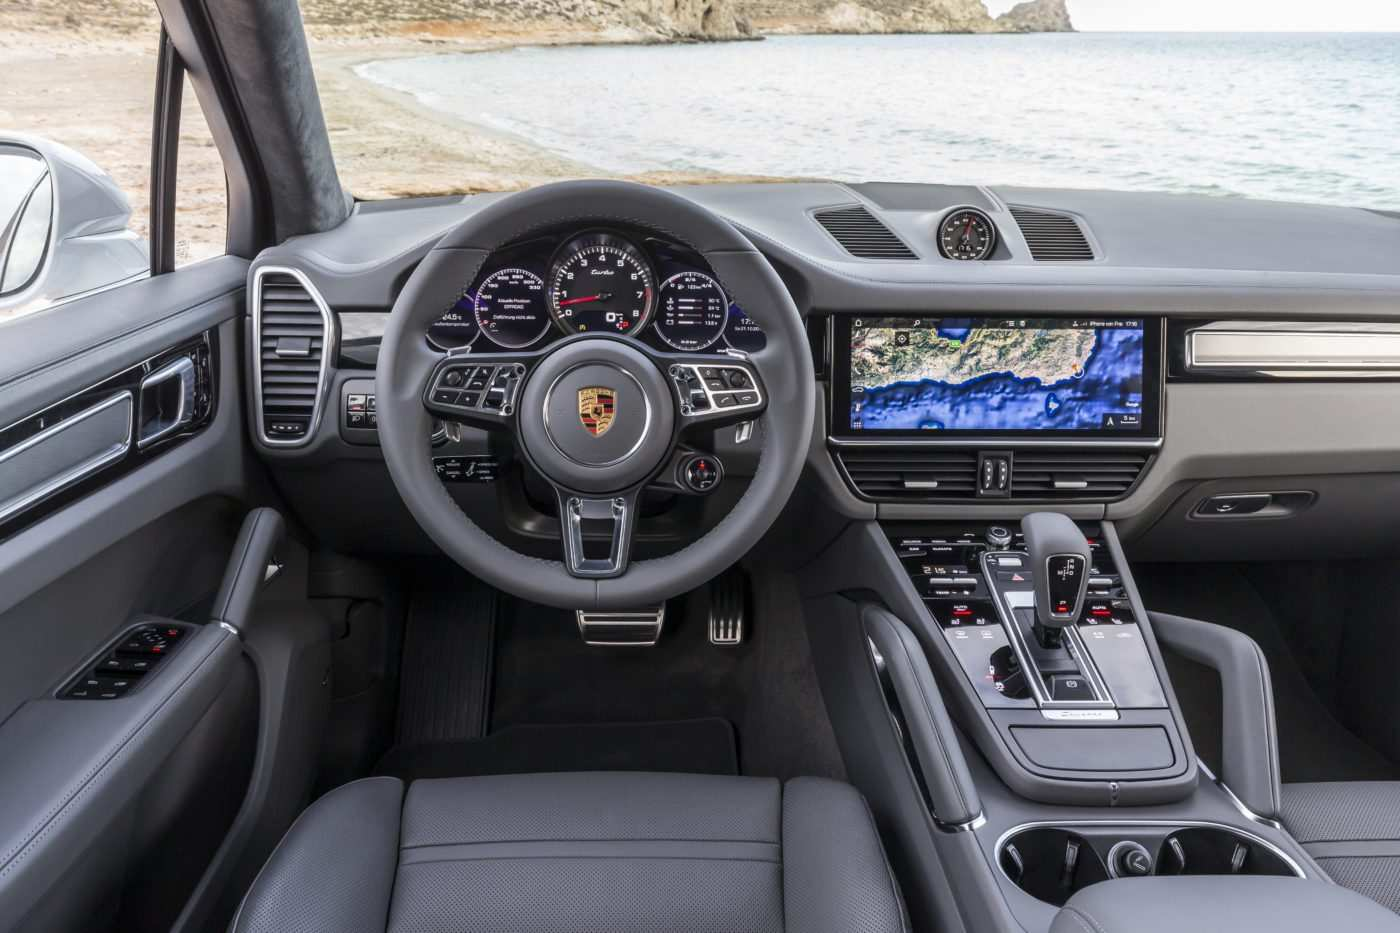 32 All New 2019 Porsche Cayenne Specs Specs and Review with 2019 Porsche Cayenne Specs